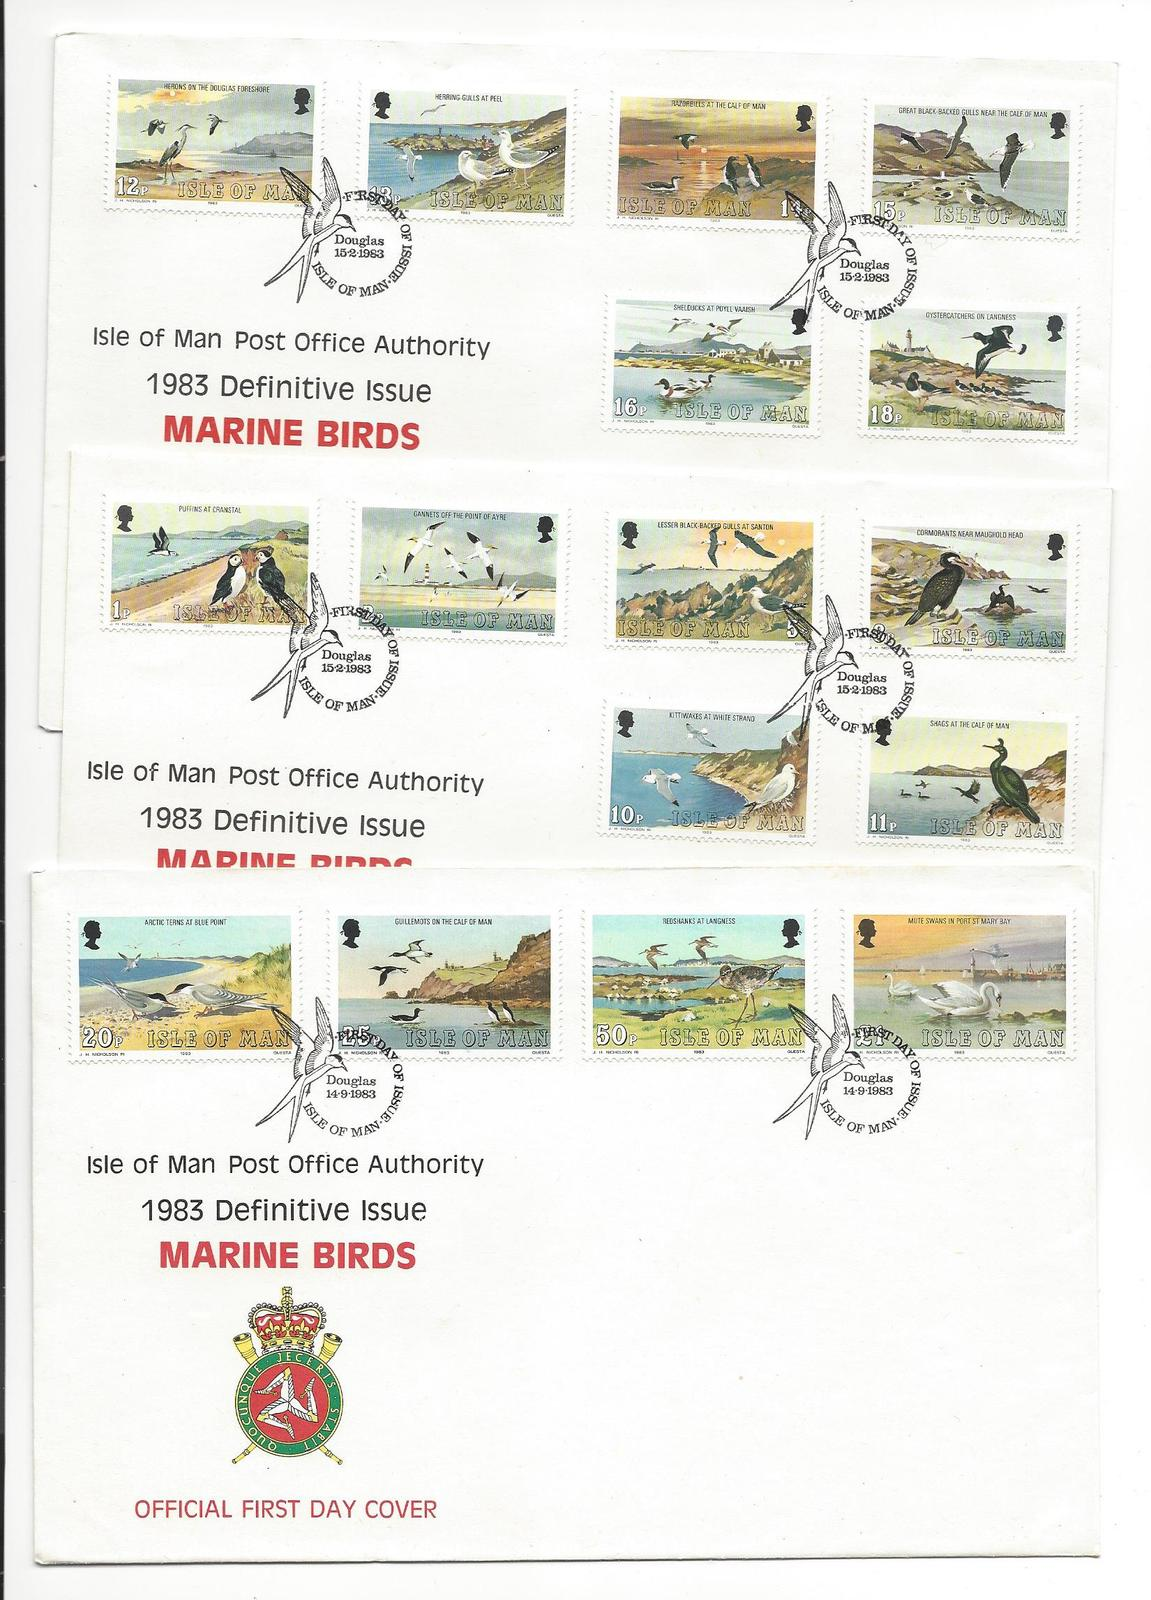 99 isle of man marine birds fdcs